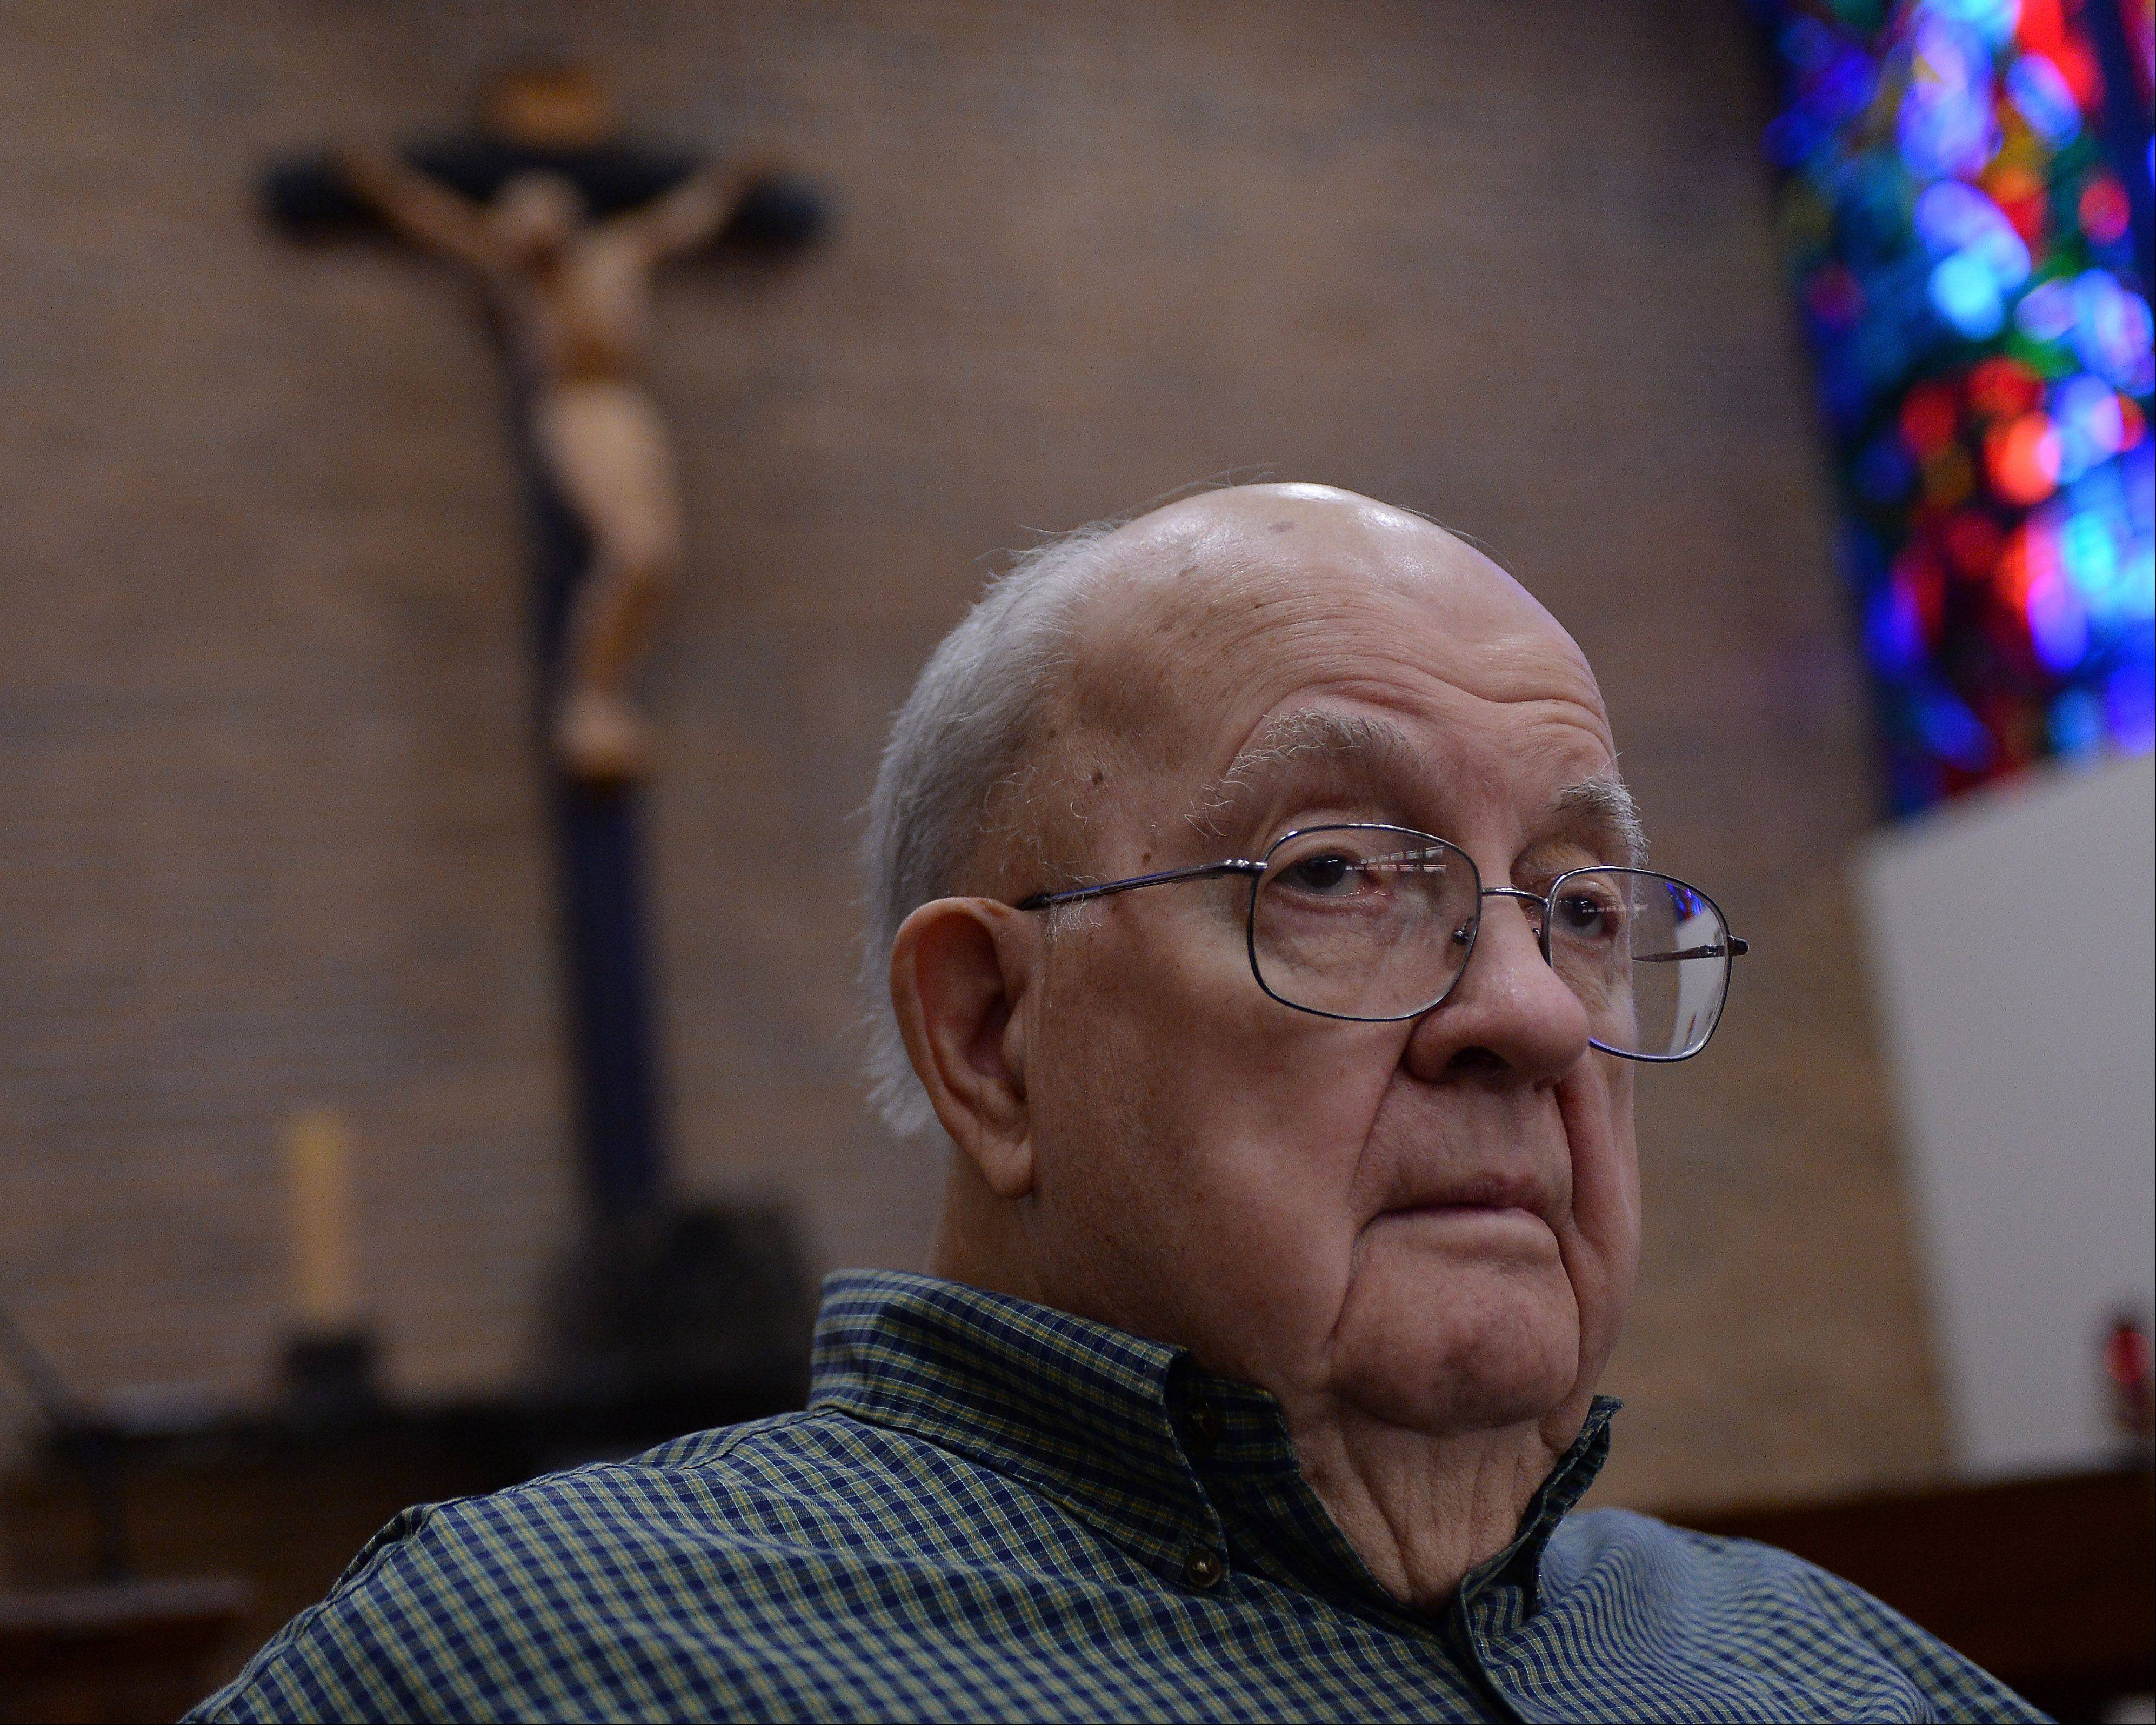 """I liked him because he was a breath of fresh air,"" the Rev. Jim Michaletz, 82, of the Clerics of St. Viator, said about John F. Kennedy. ""I did not vote for him because he was Catholic."" Michaletz was a teacher at St. Viator High School in Arlington Heights at the time Kennedy was killed. He recalls sitting in stunned silence with his students as they listened to the radio."